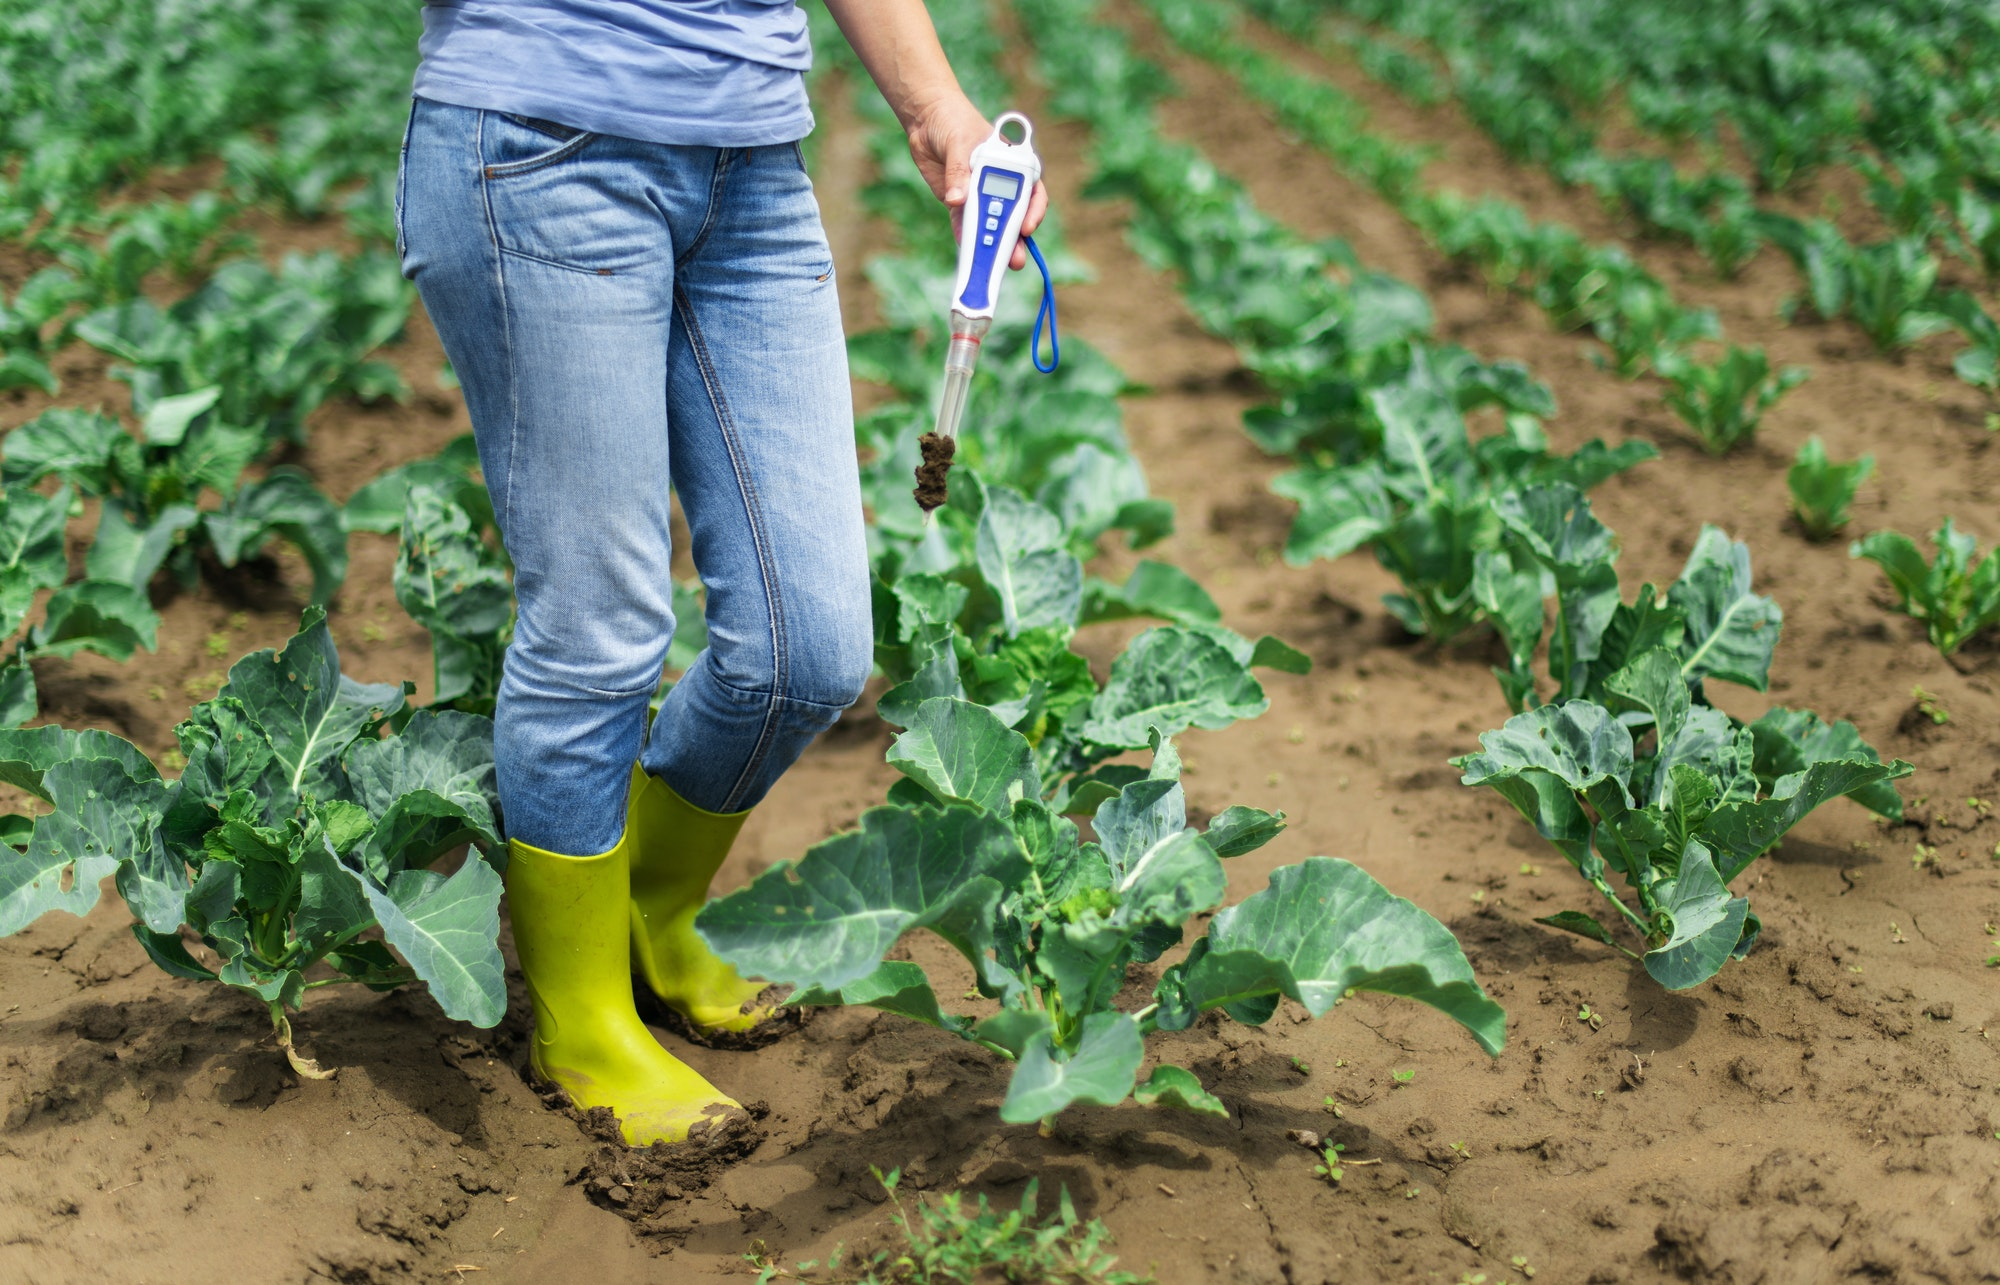 Woman use digital soil meter in the soil. Cabbage plants.